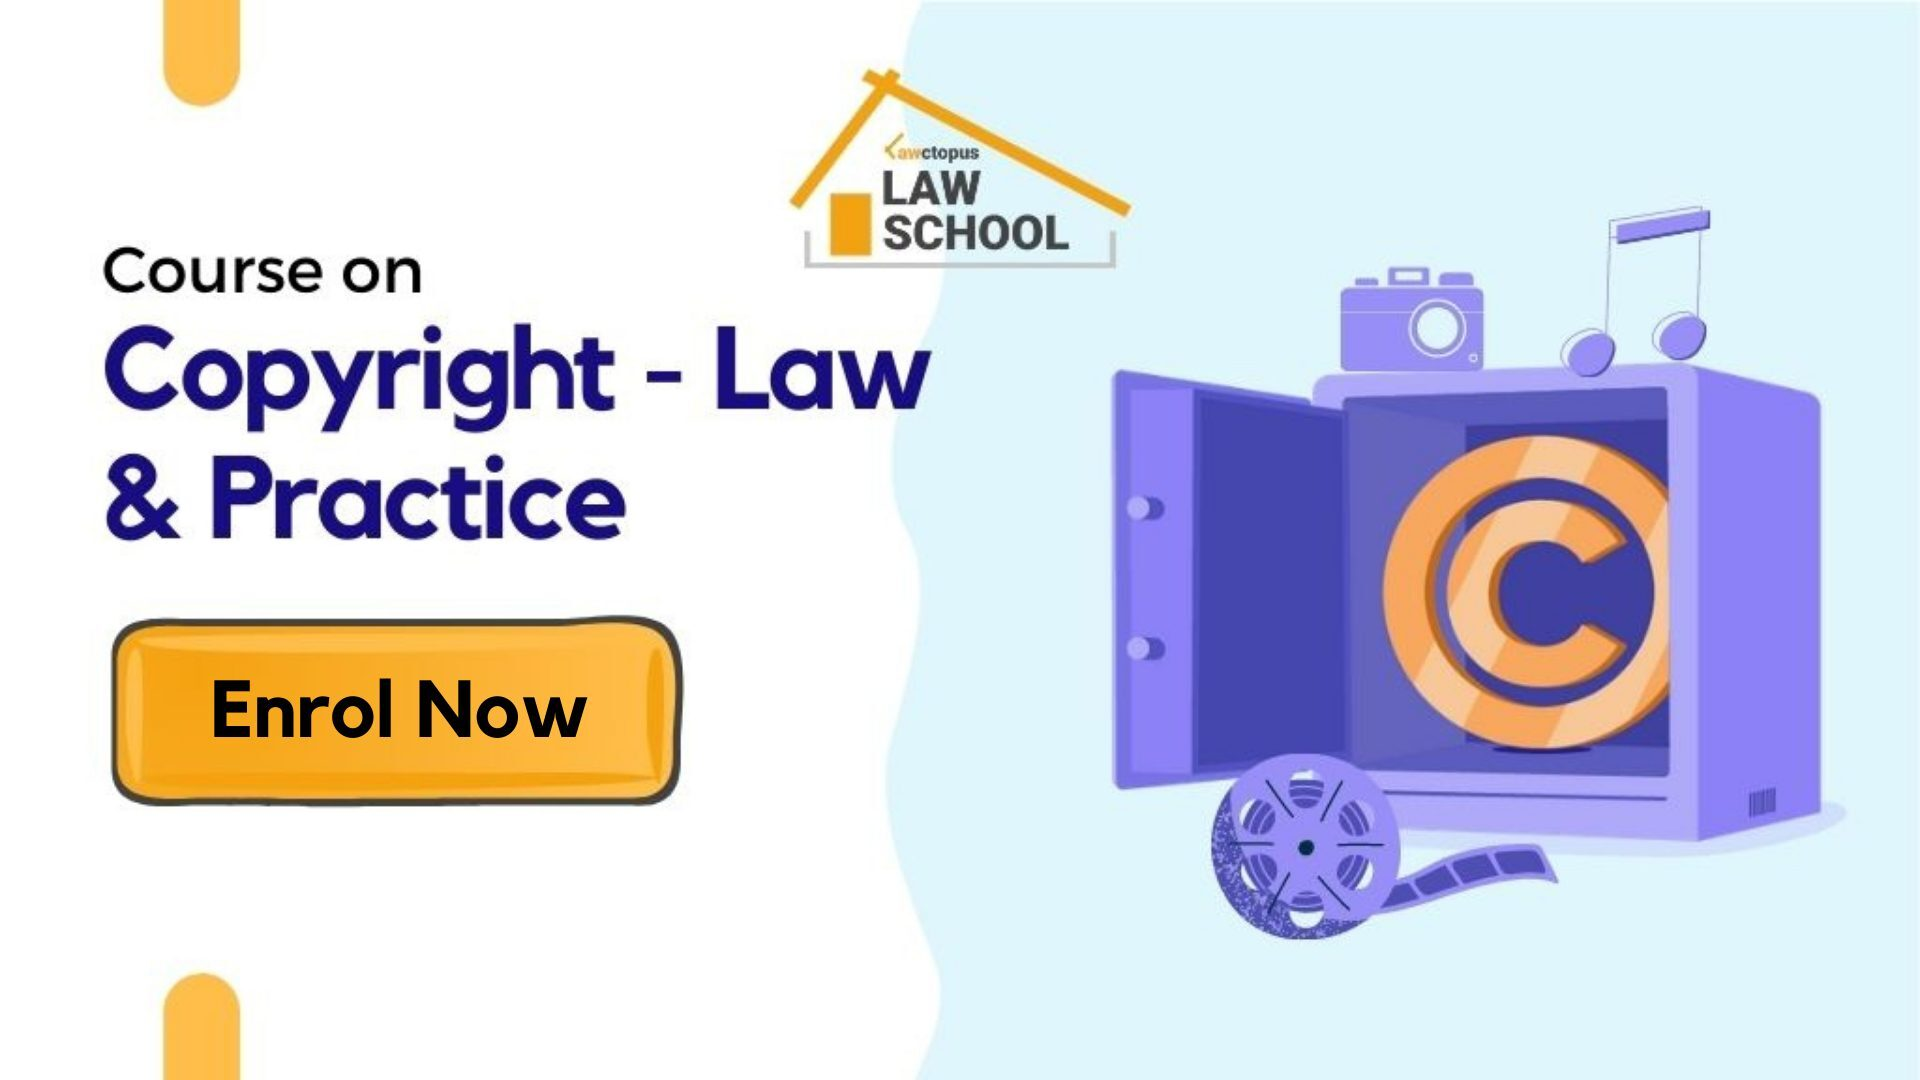 Course on Copyright